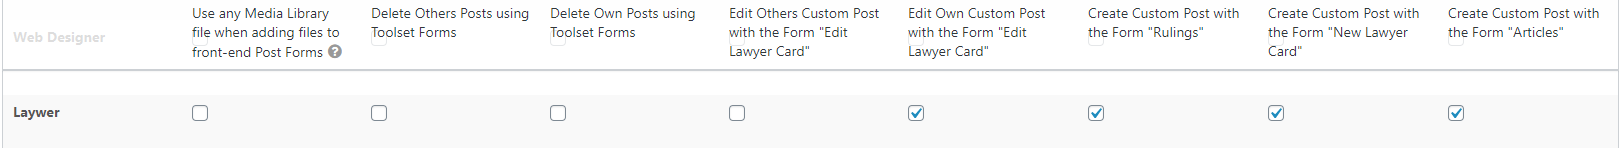 access-lawyer.png